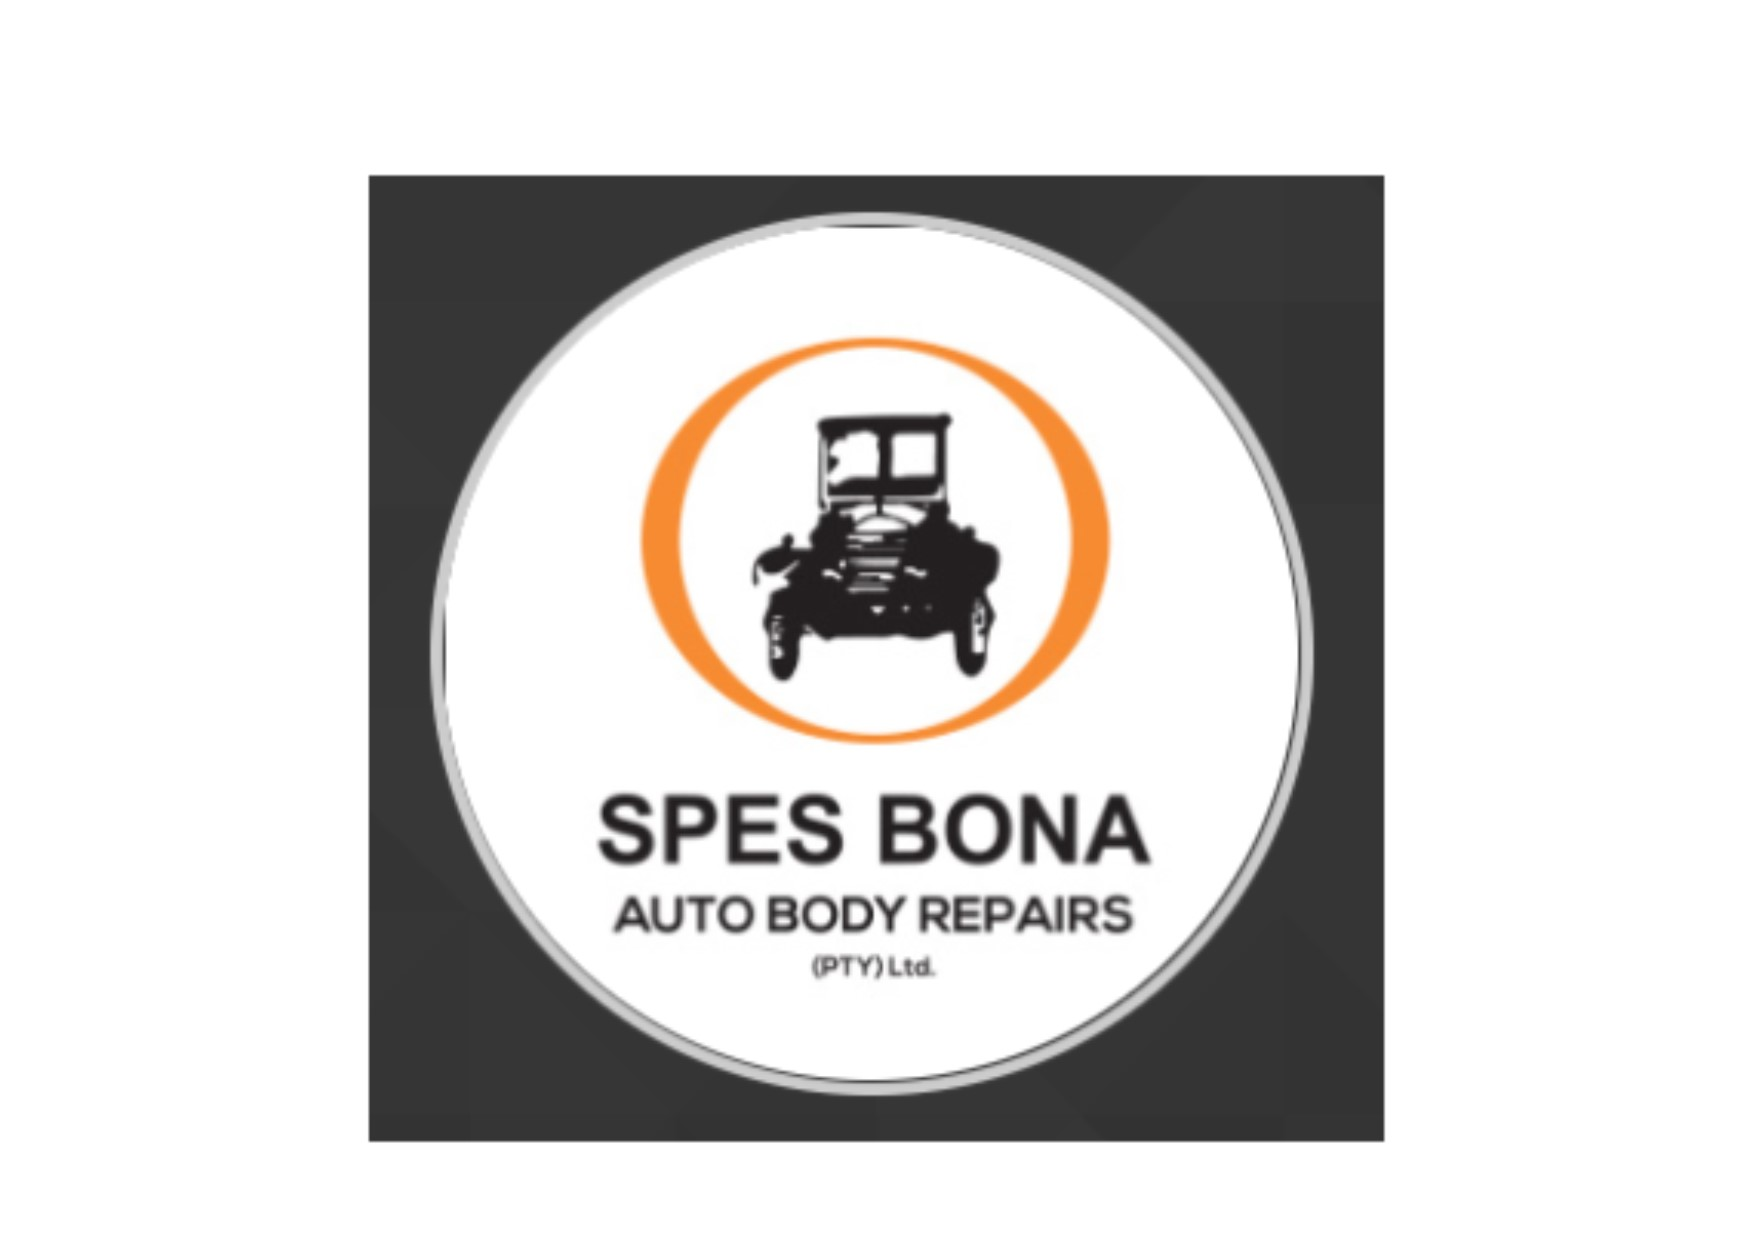 Spes Bona Auto Body Repairs